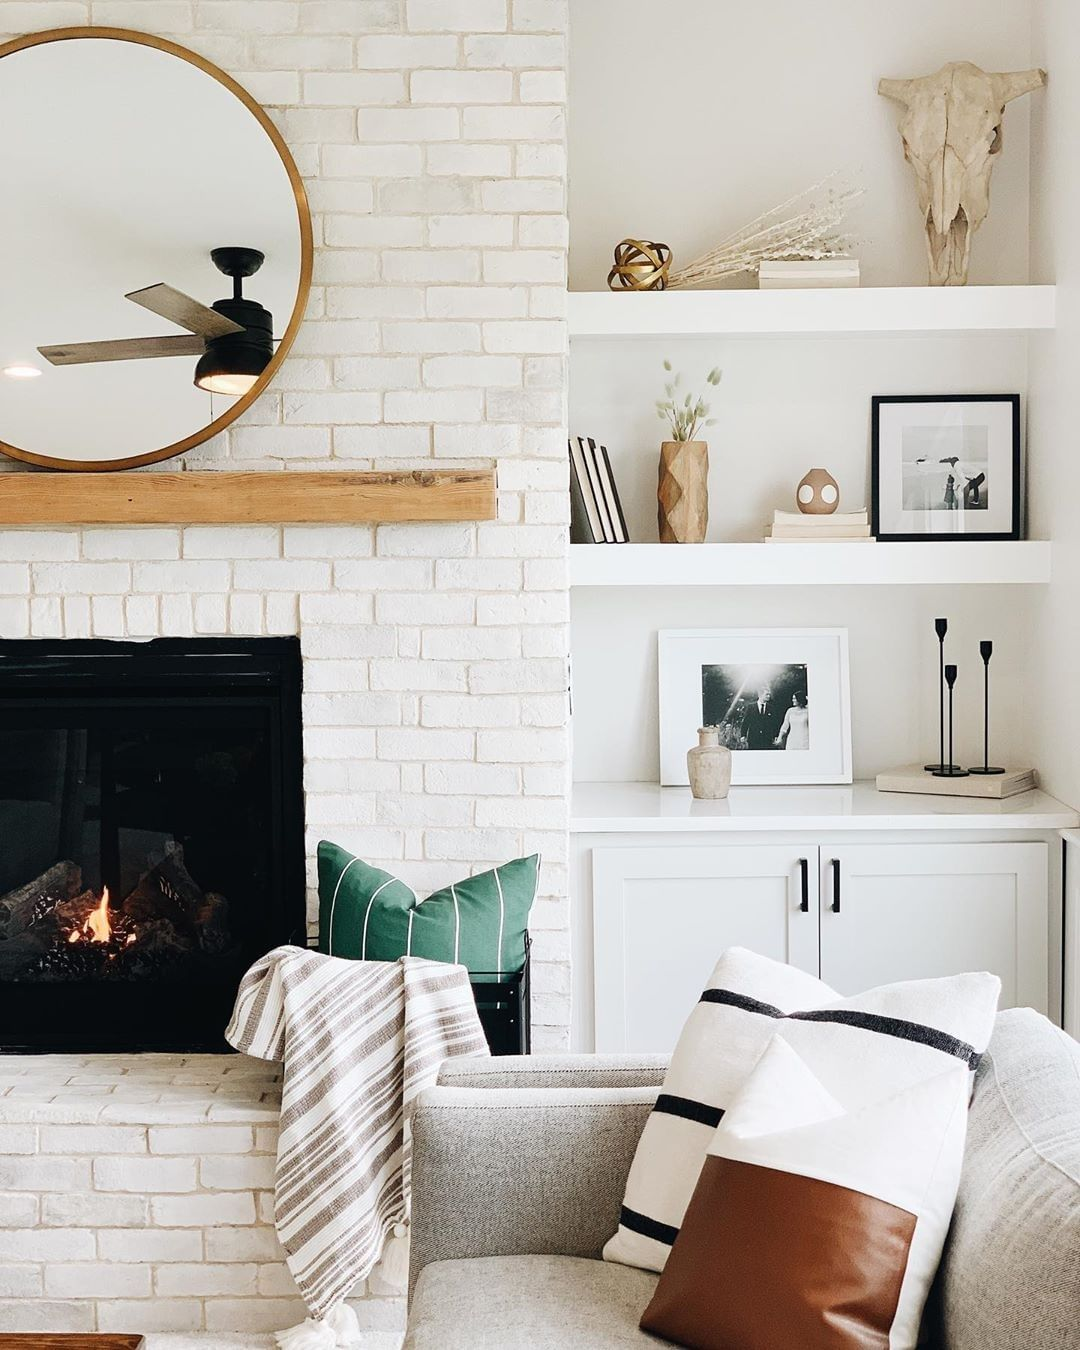 Liketoknow It On Instagram Living Room Inspo Care Of Harvwife Shop This Pic Instantly From Your Phone And D In 2021 Living Room Inspo Dream House Rooms Room Inspo Download fireplace living room